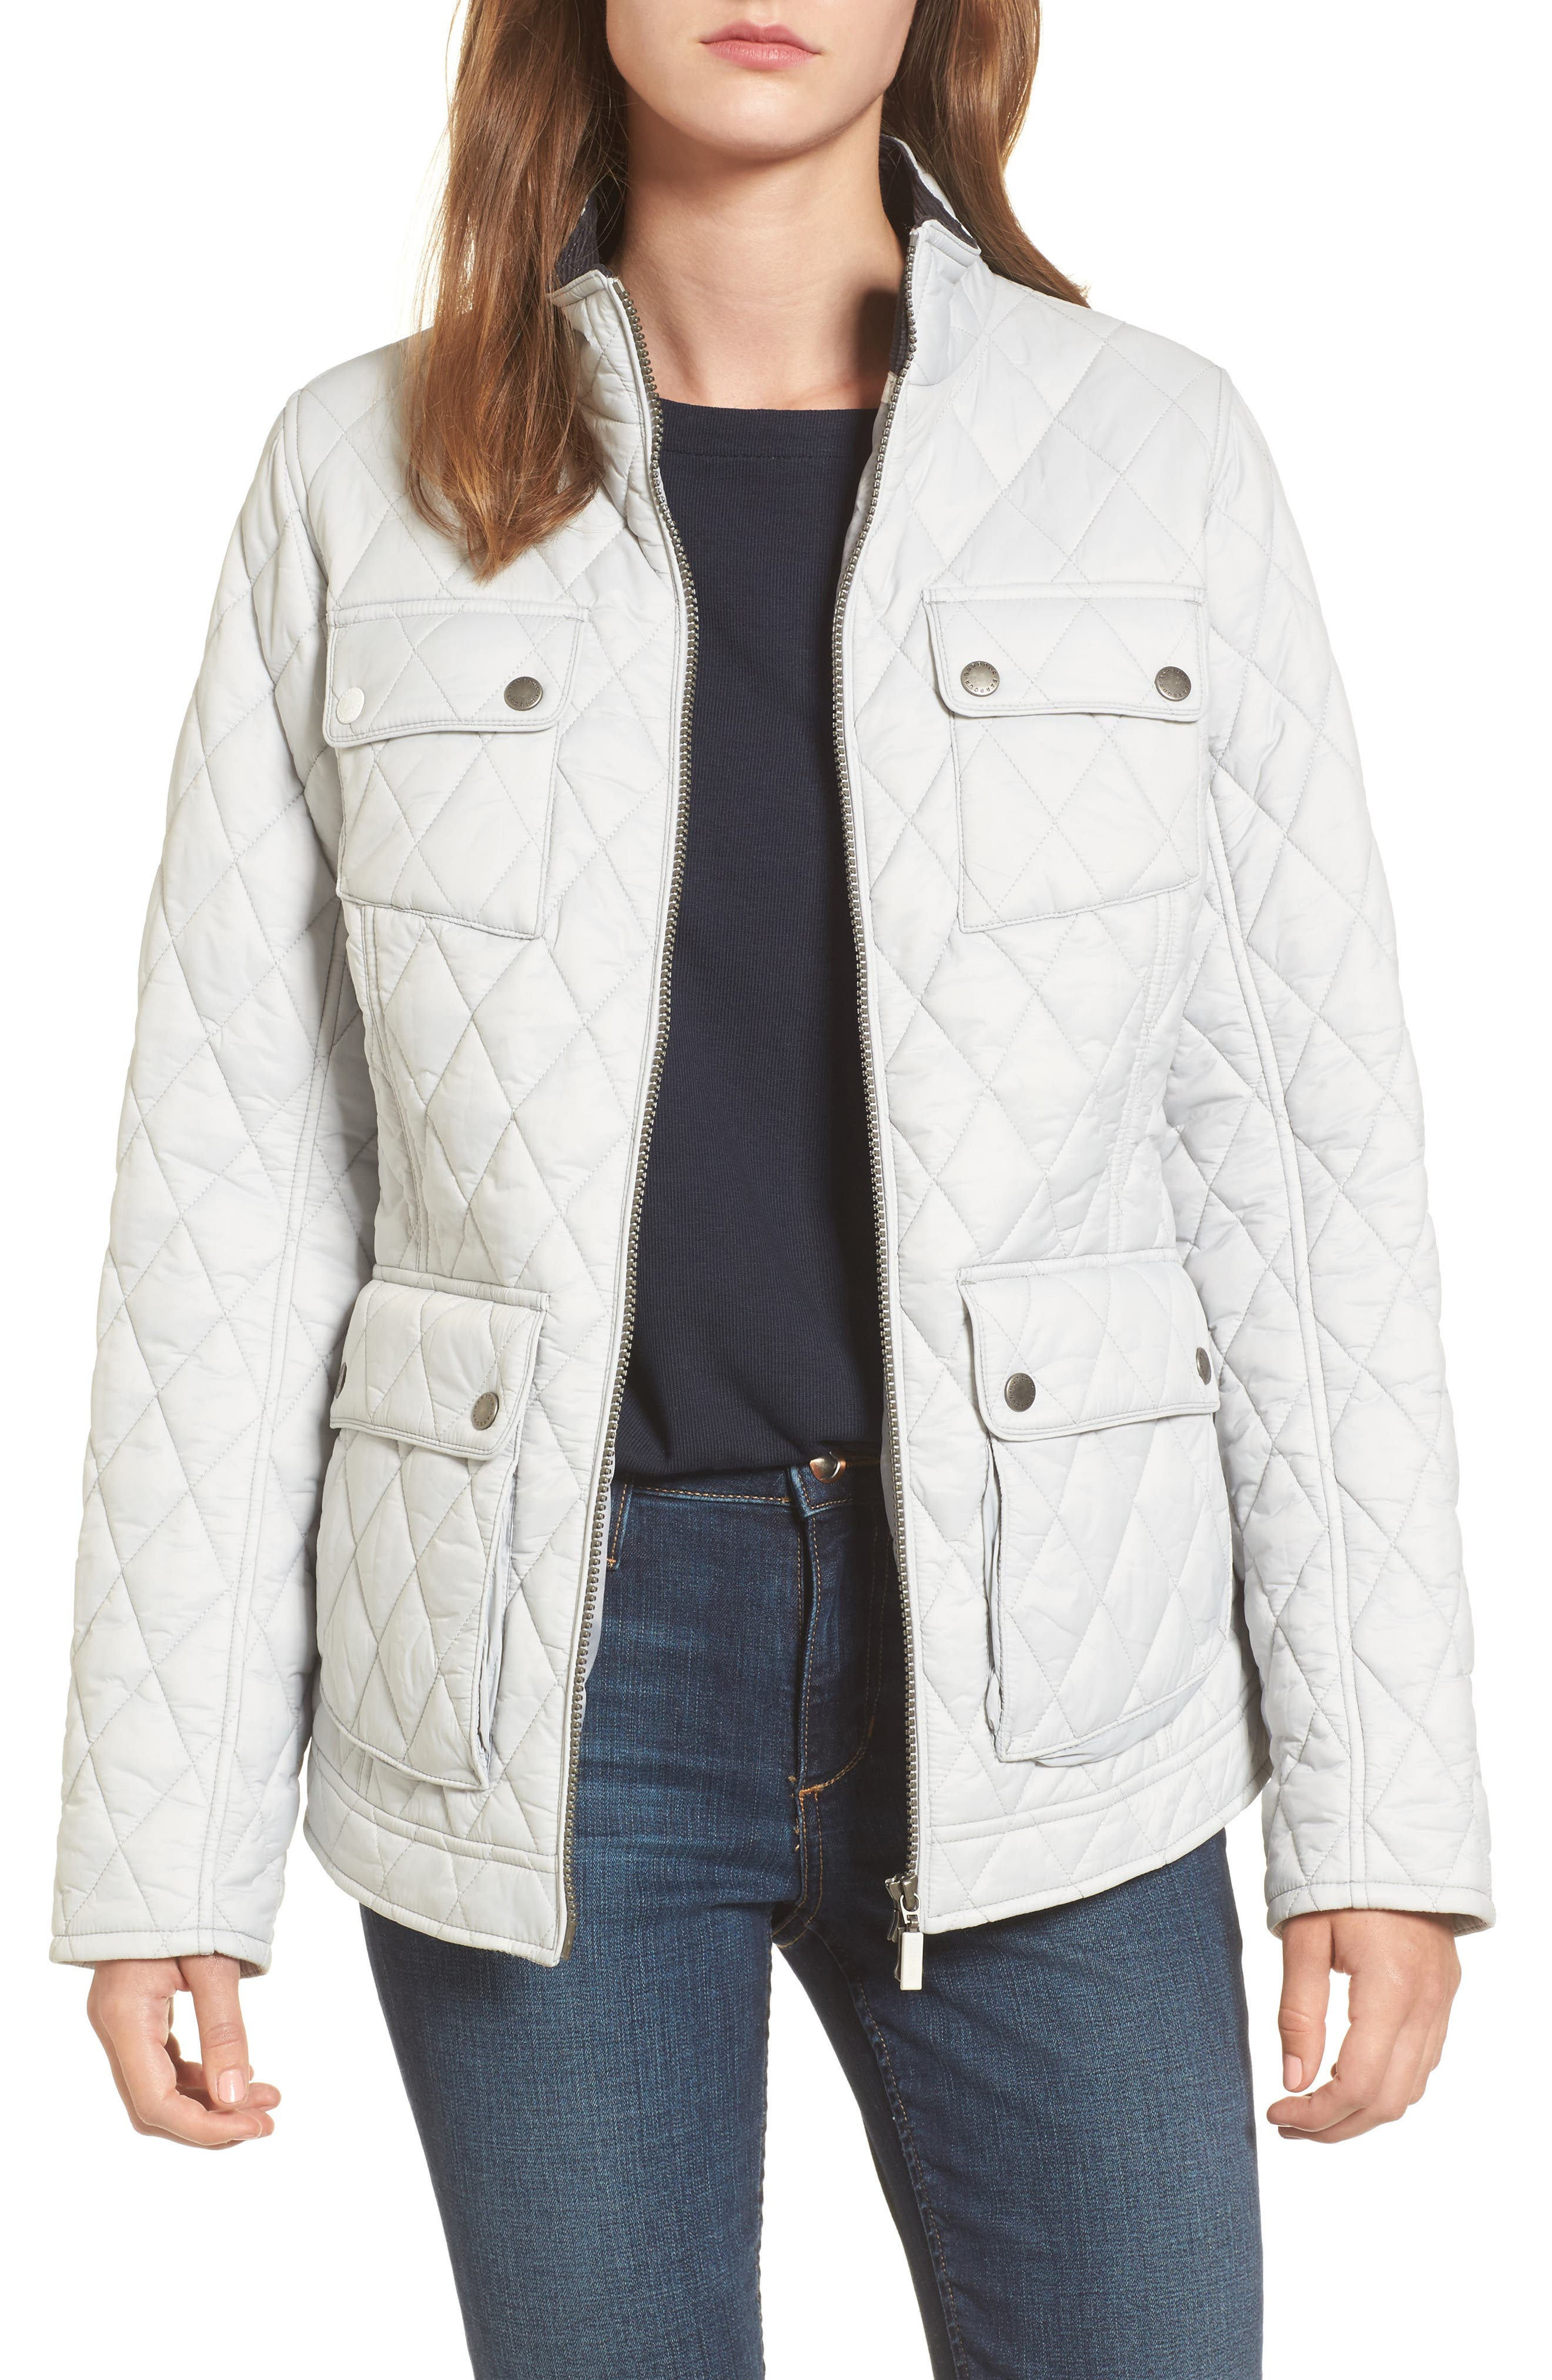 Dolostone Quilted Jacket,                             Main thumbnail 1, color,                             150